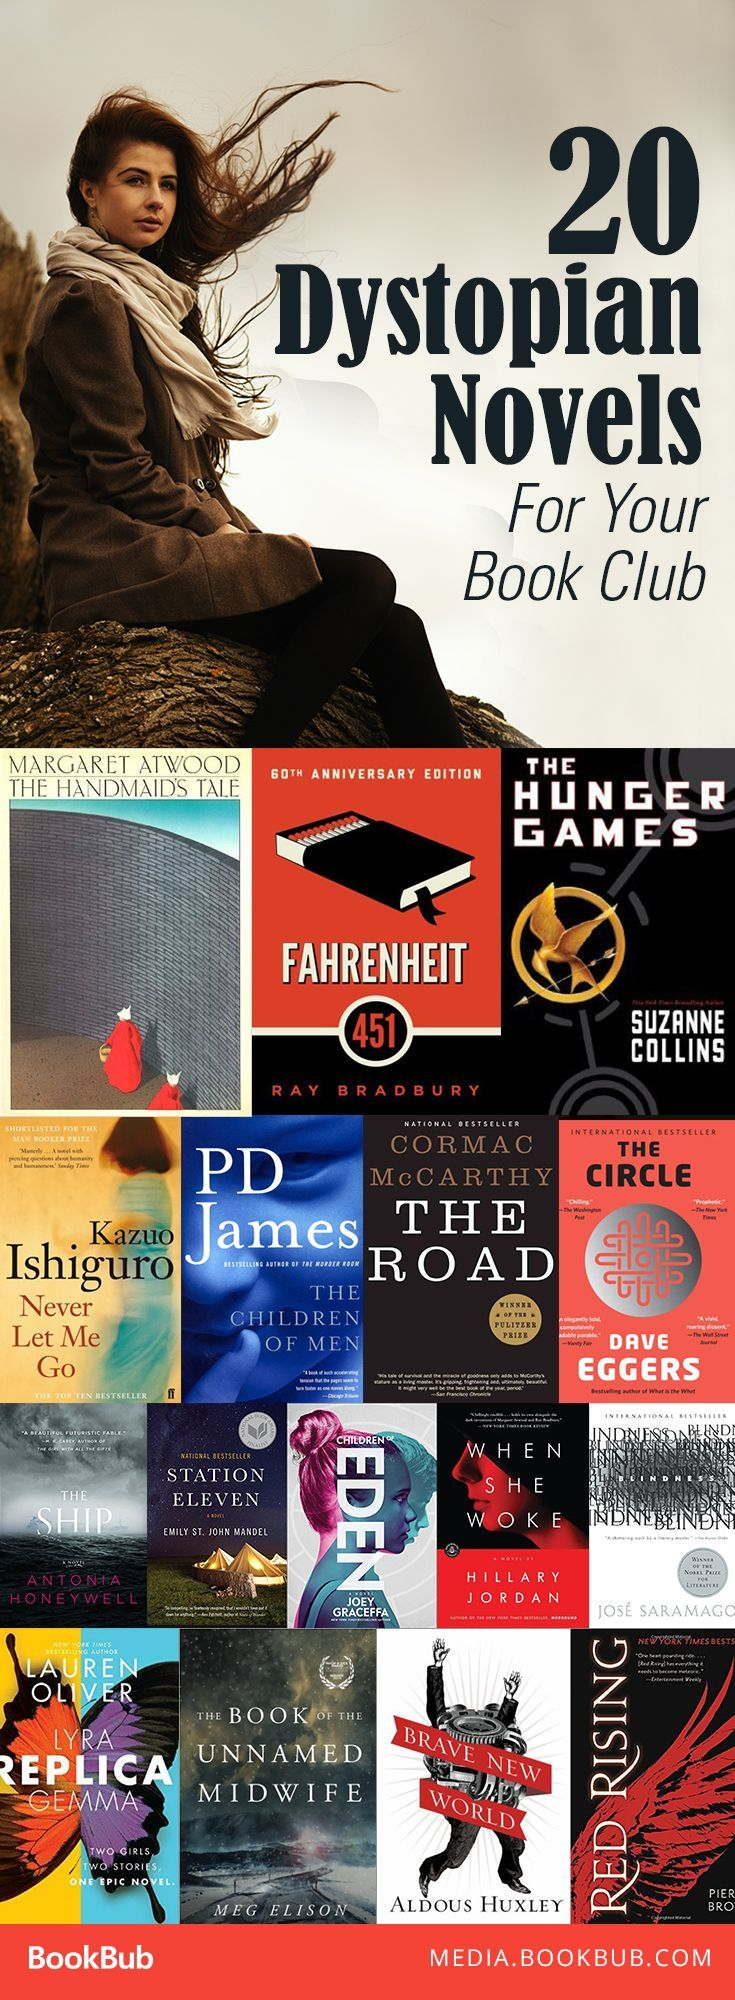 If you love dystopian books, check out these great mix of novels for teens and adults. Including some of the best classic dystopian novels, and newer series!